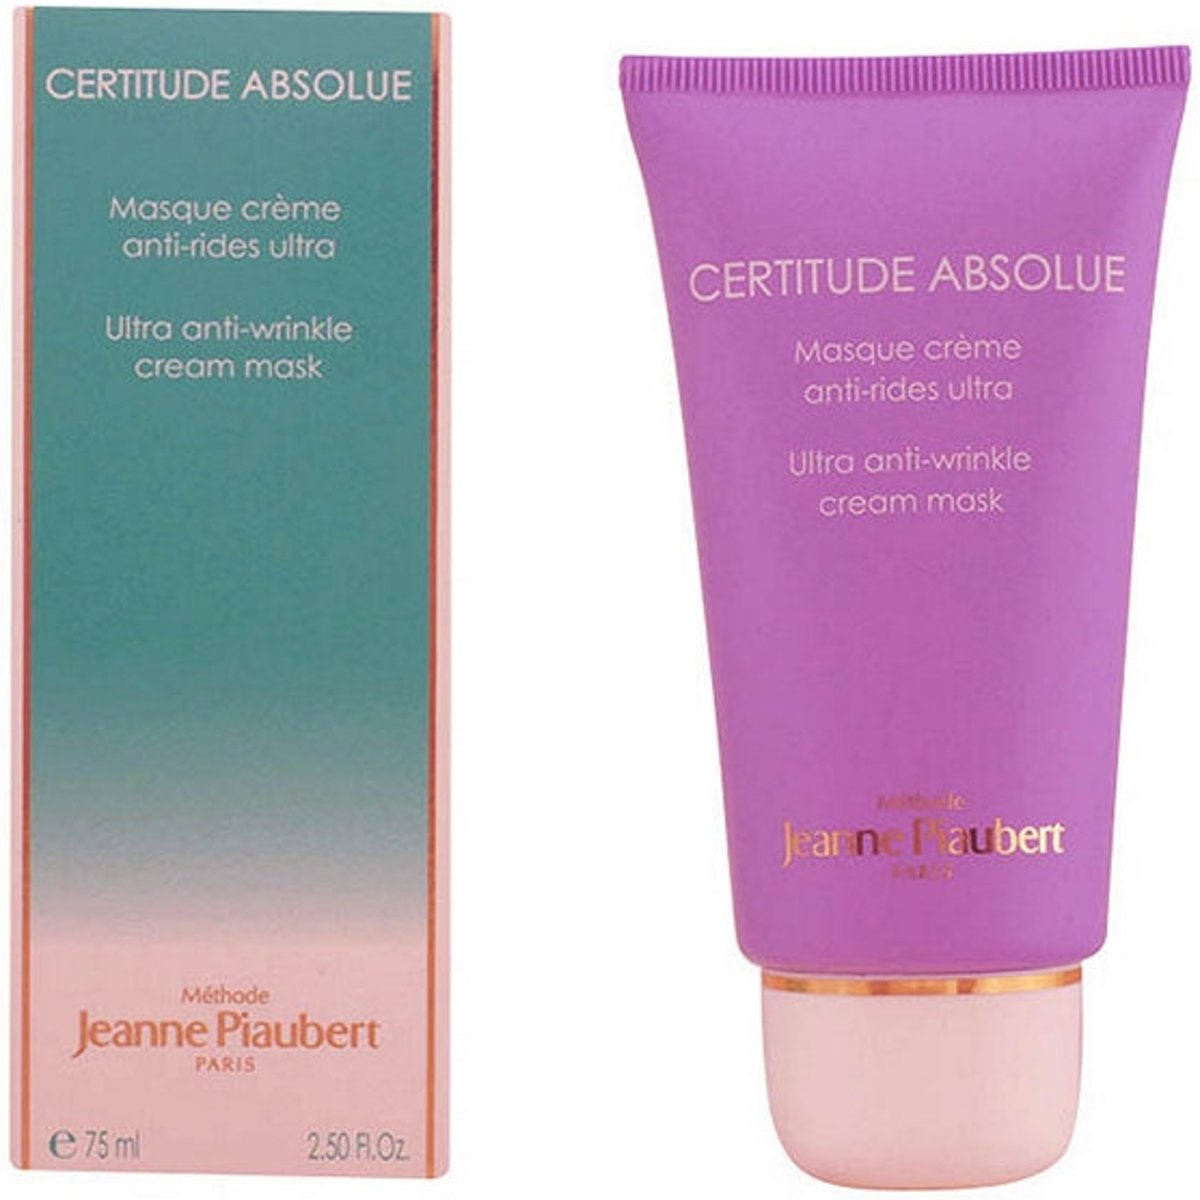 Anti-Rimpel Masker Certitude Absolue Jeanne Piaubert